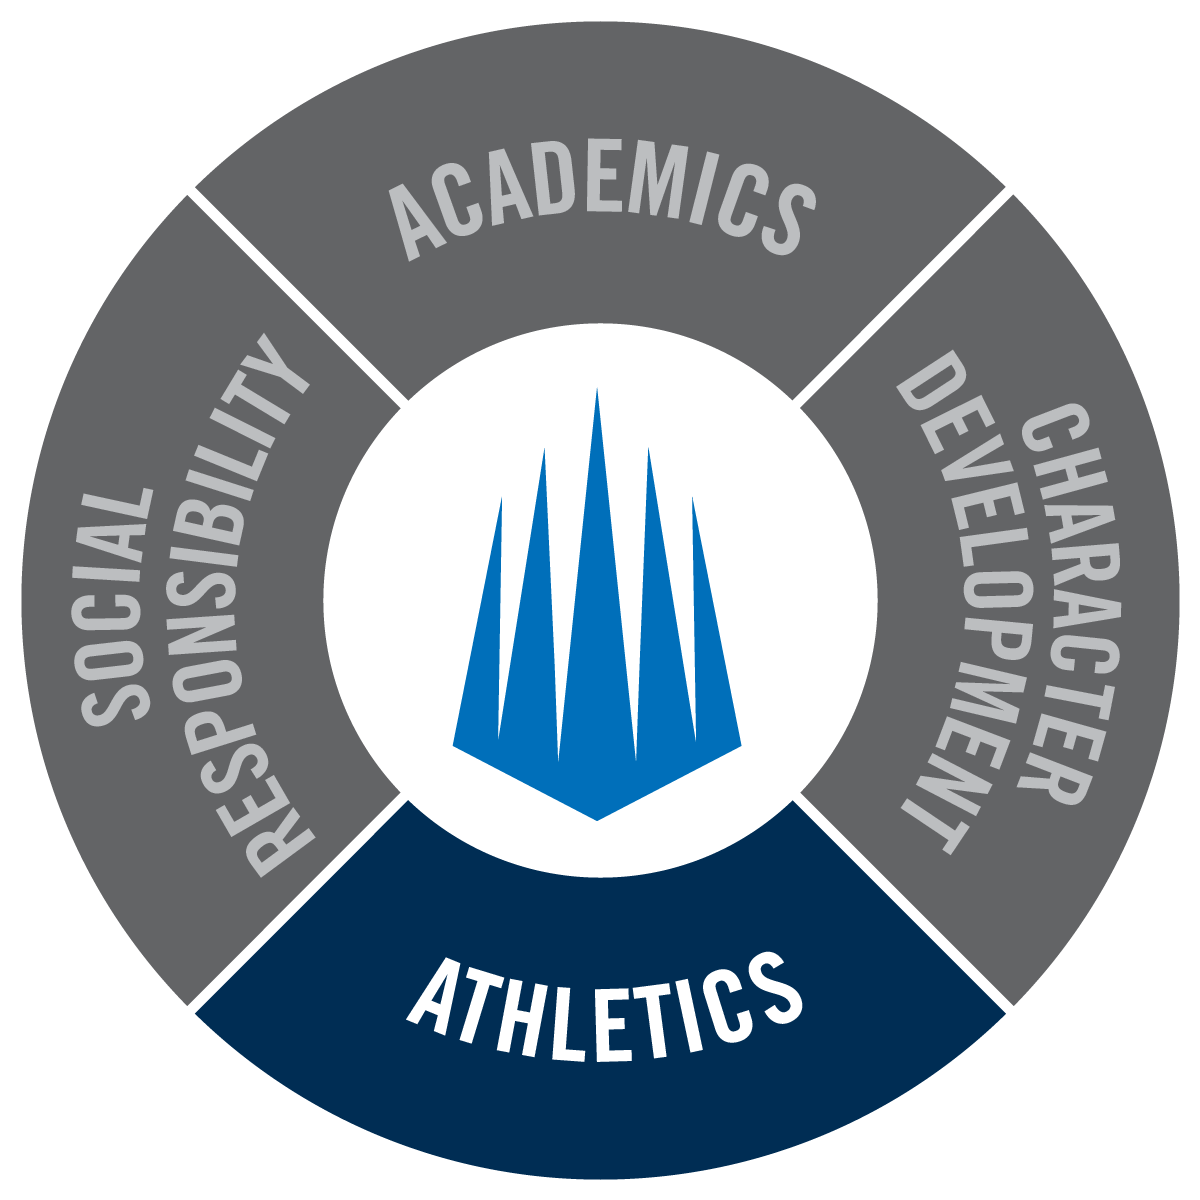 Academics, Character Development, Athletics, Social Responsibility